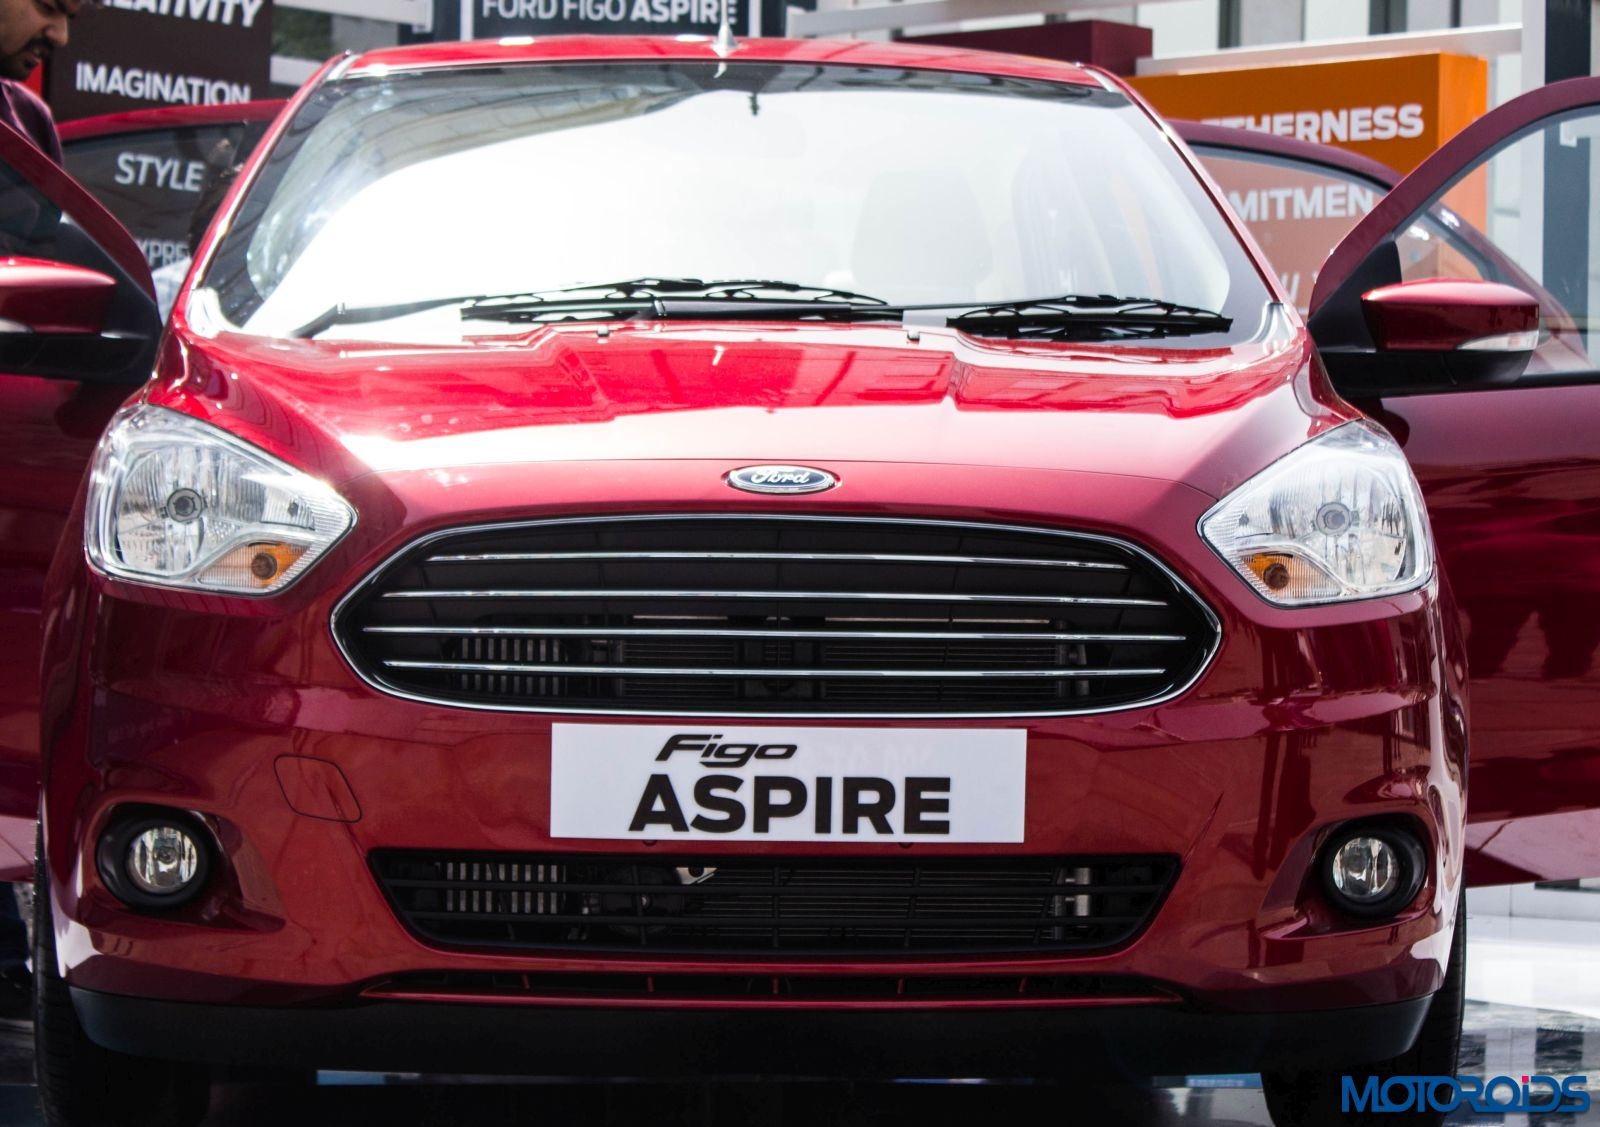 Ford aspire 2015 photo - 4